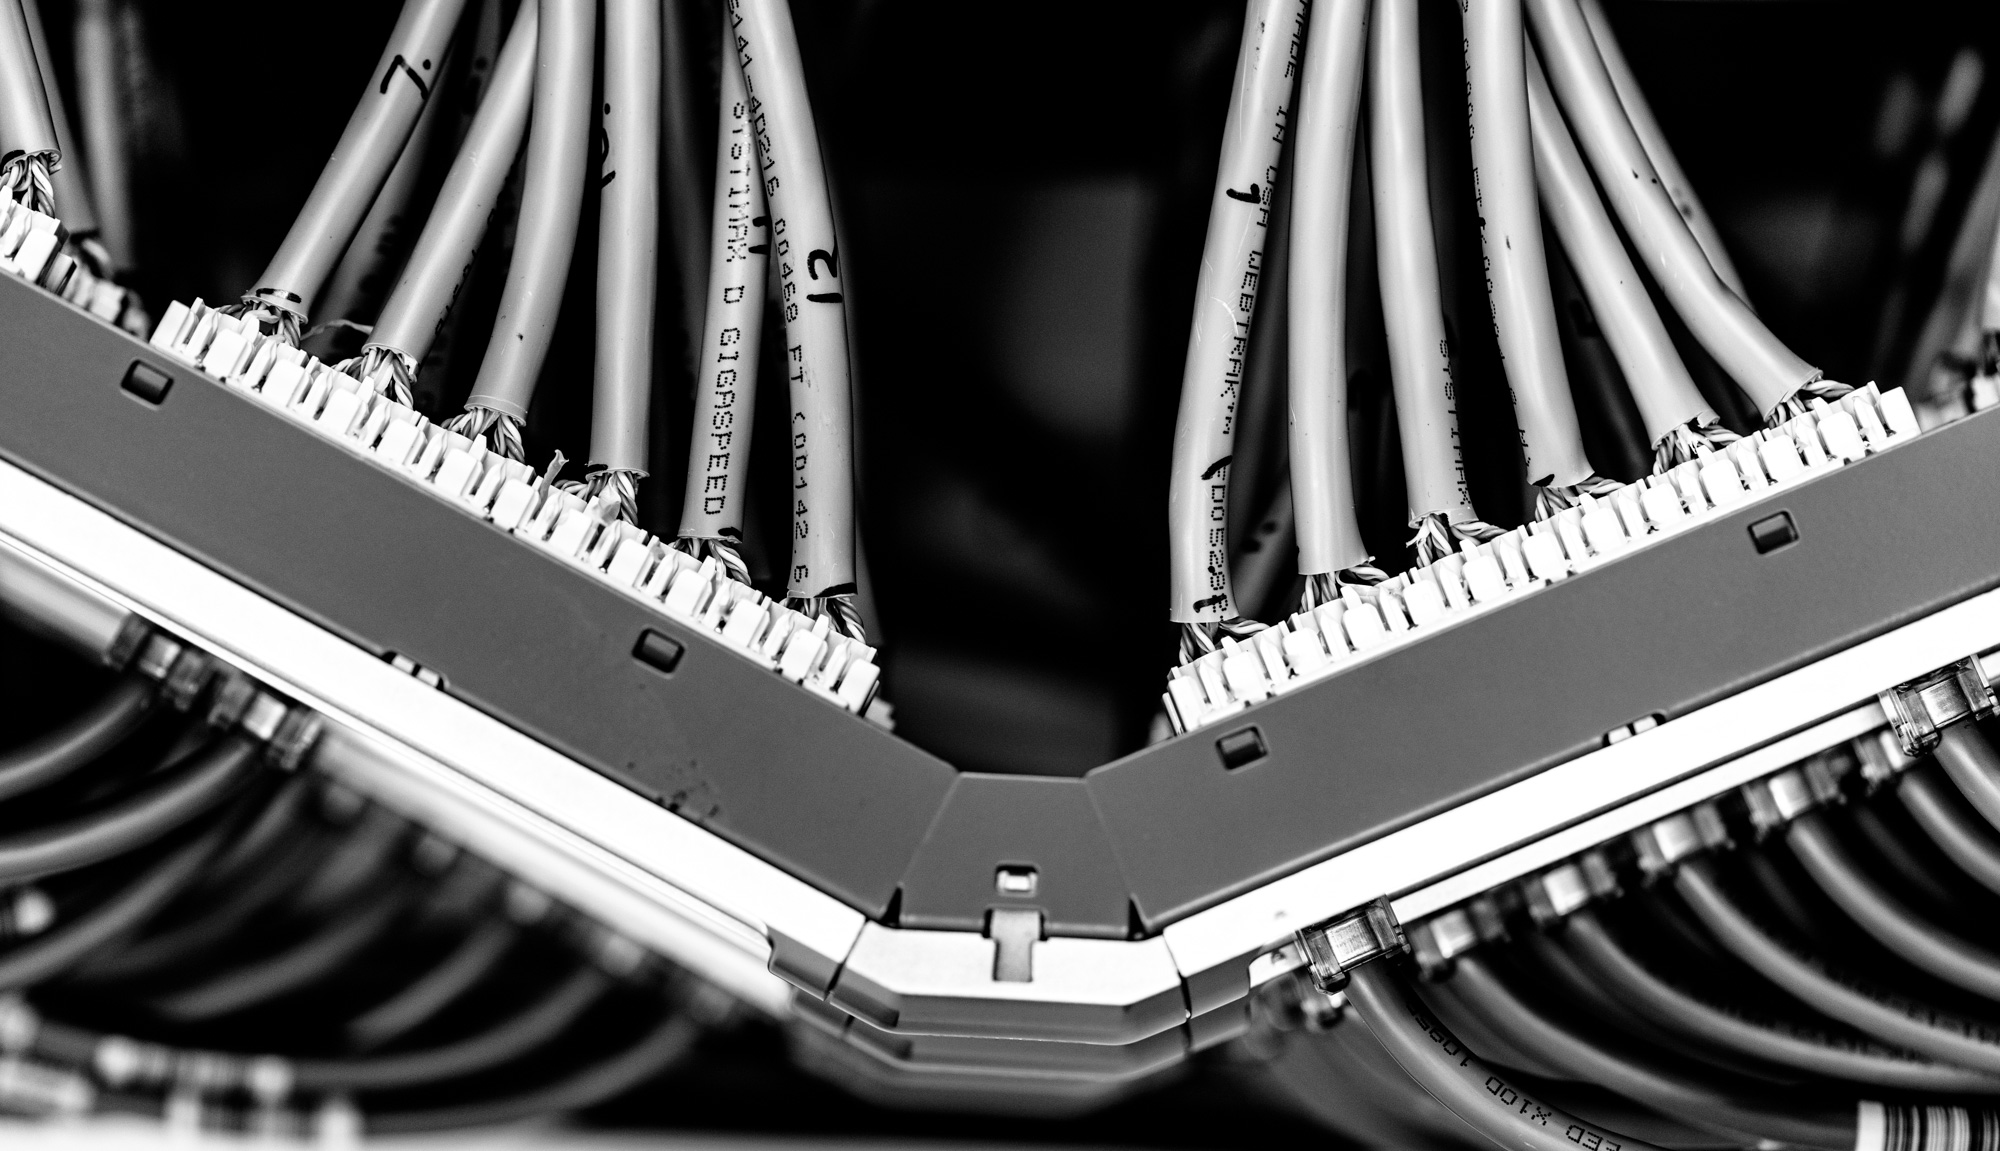 Macquarie Cloud Services have data centre cables (or data center cables or datacentercables) ready for your cable patching service or redundant cable tray paths